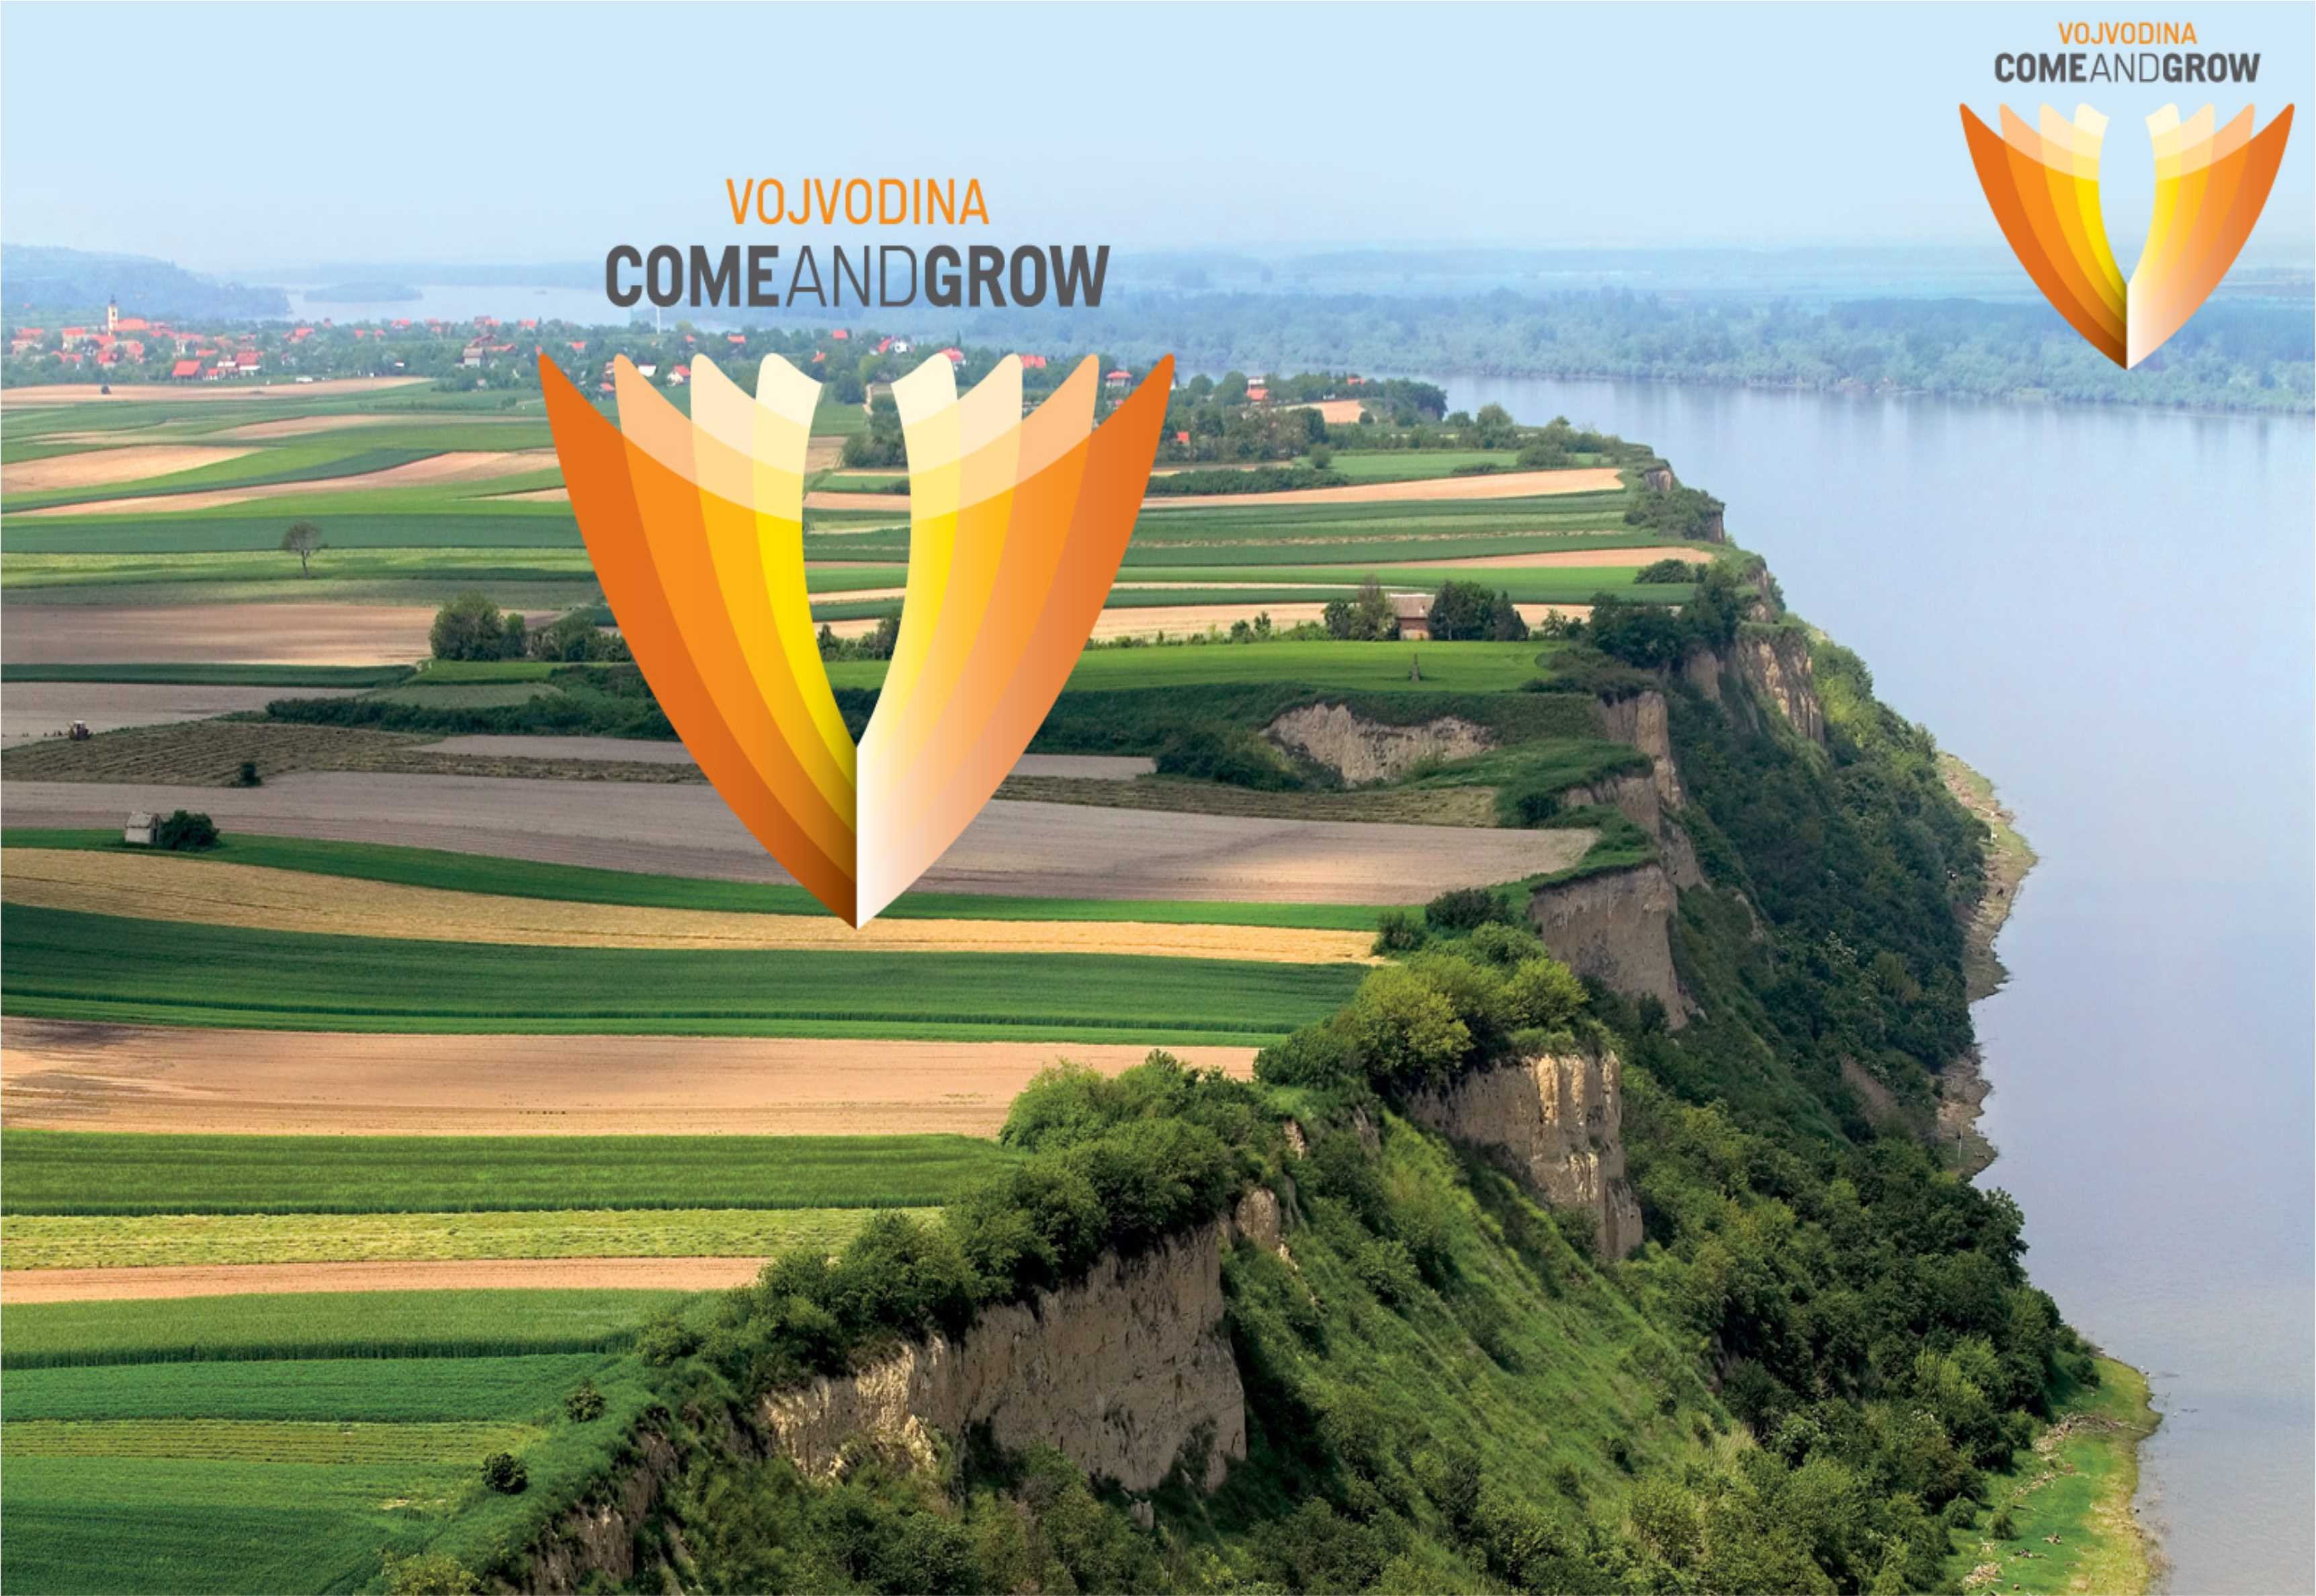 vojvodina vip come and grow